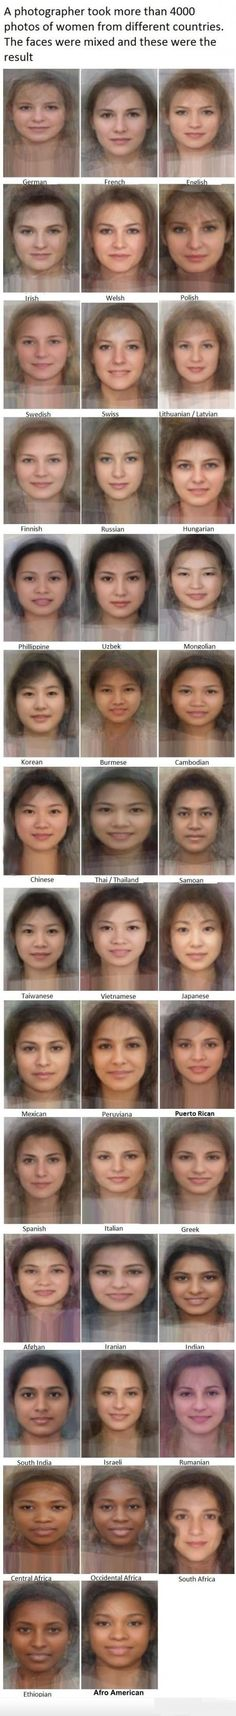 A photographer took more than 4000 photo of women from different countries and mixed them together. Kind of interesting!